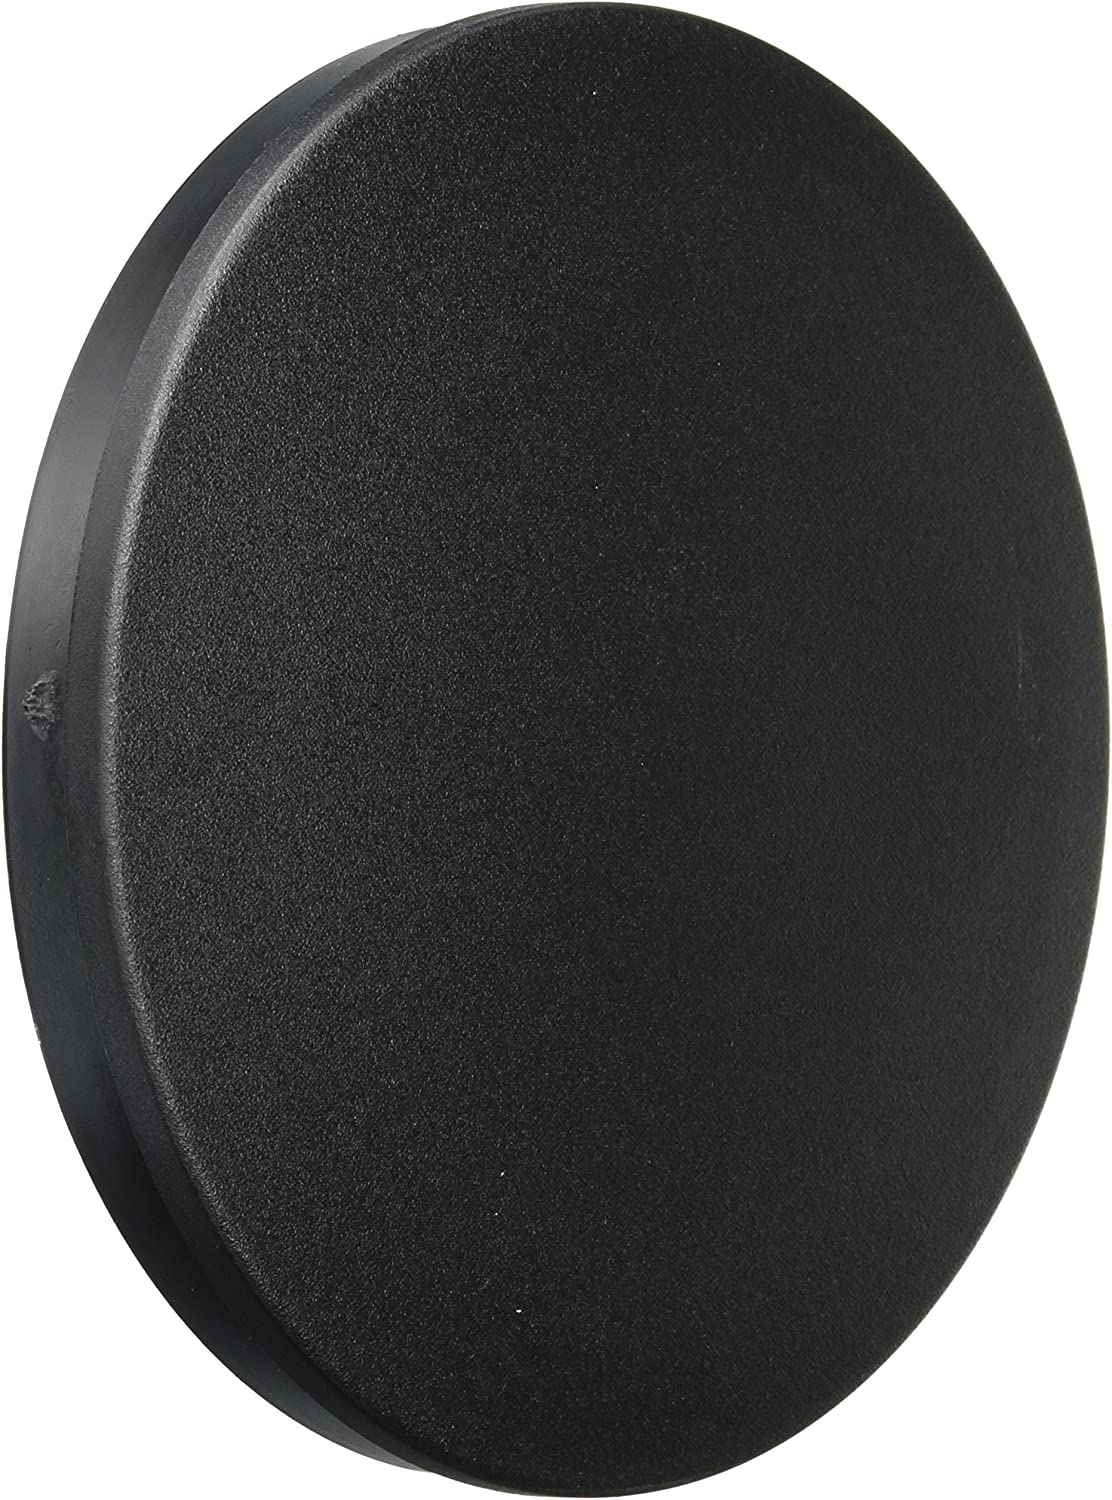 Kaiser Slip-On Lens Cap for Lenses with an Outside Diameter of 120mm (206992)